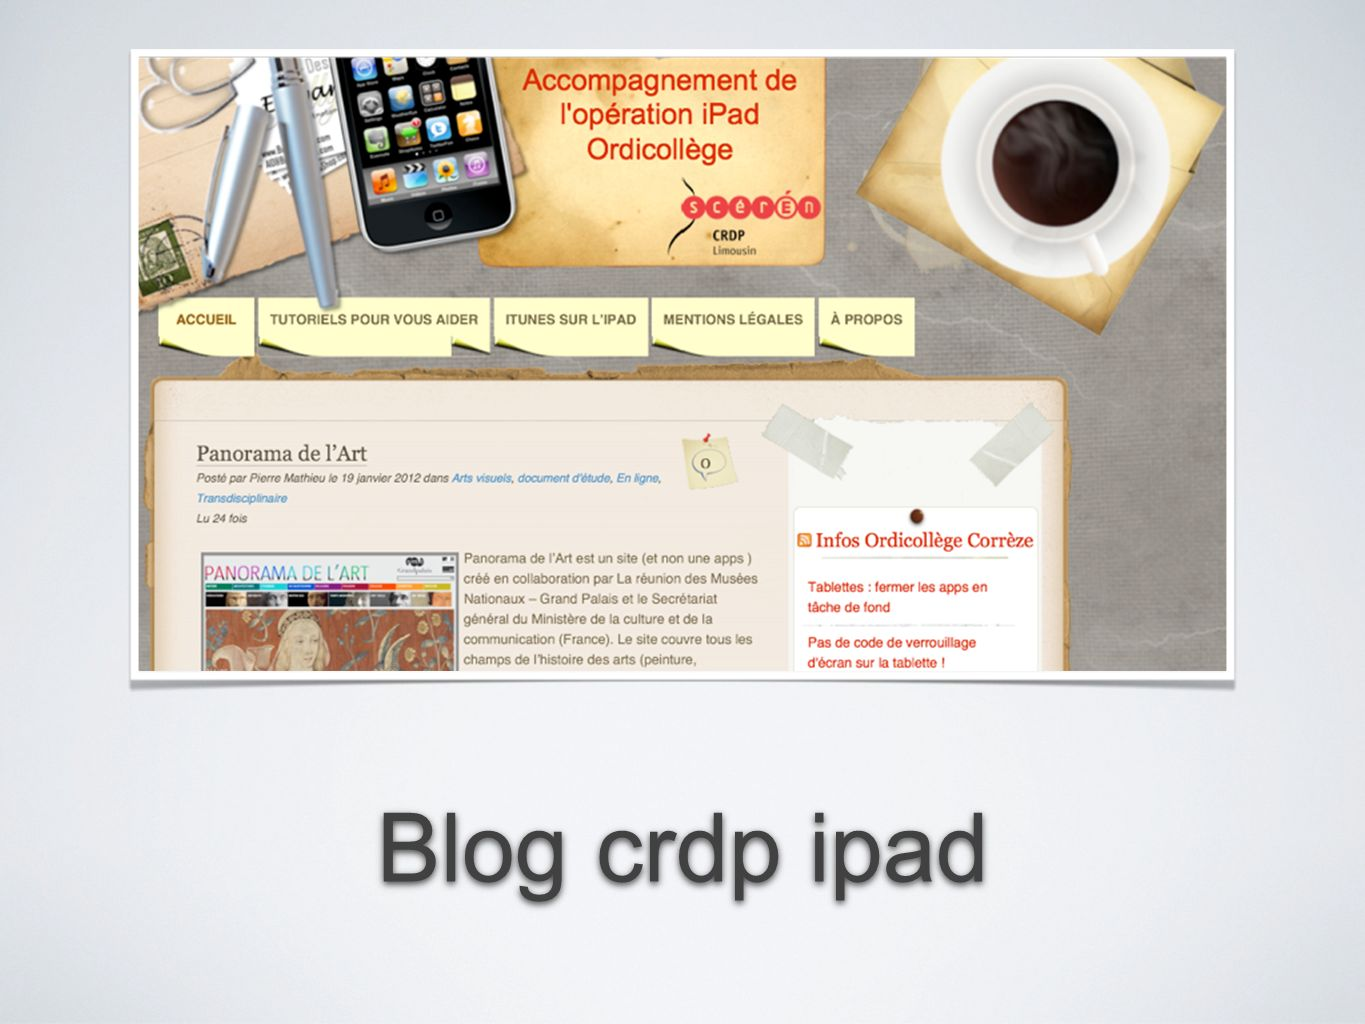 Blog crdp ipad